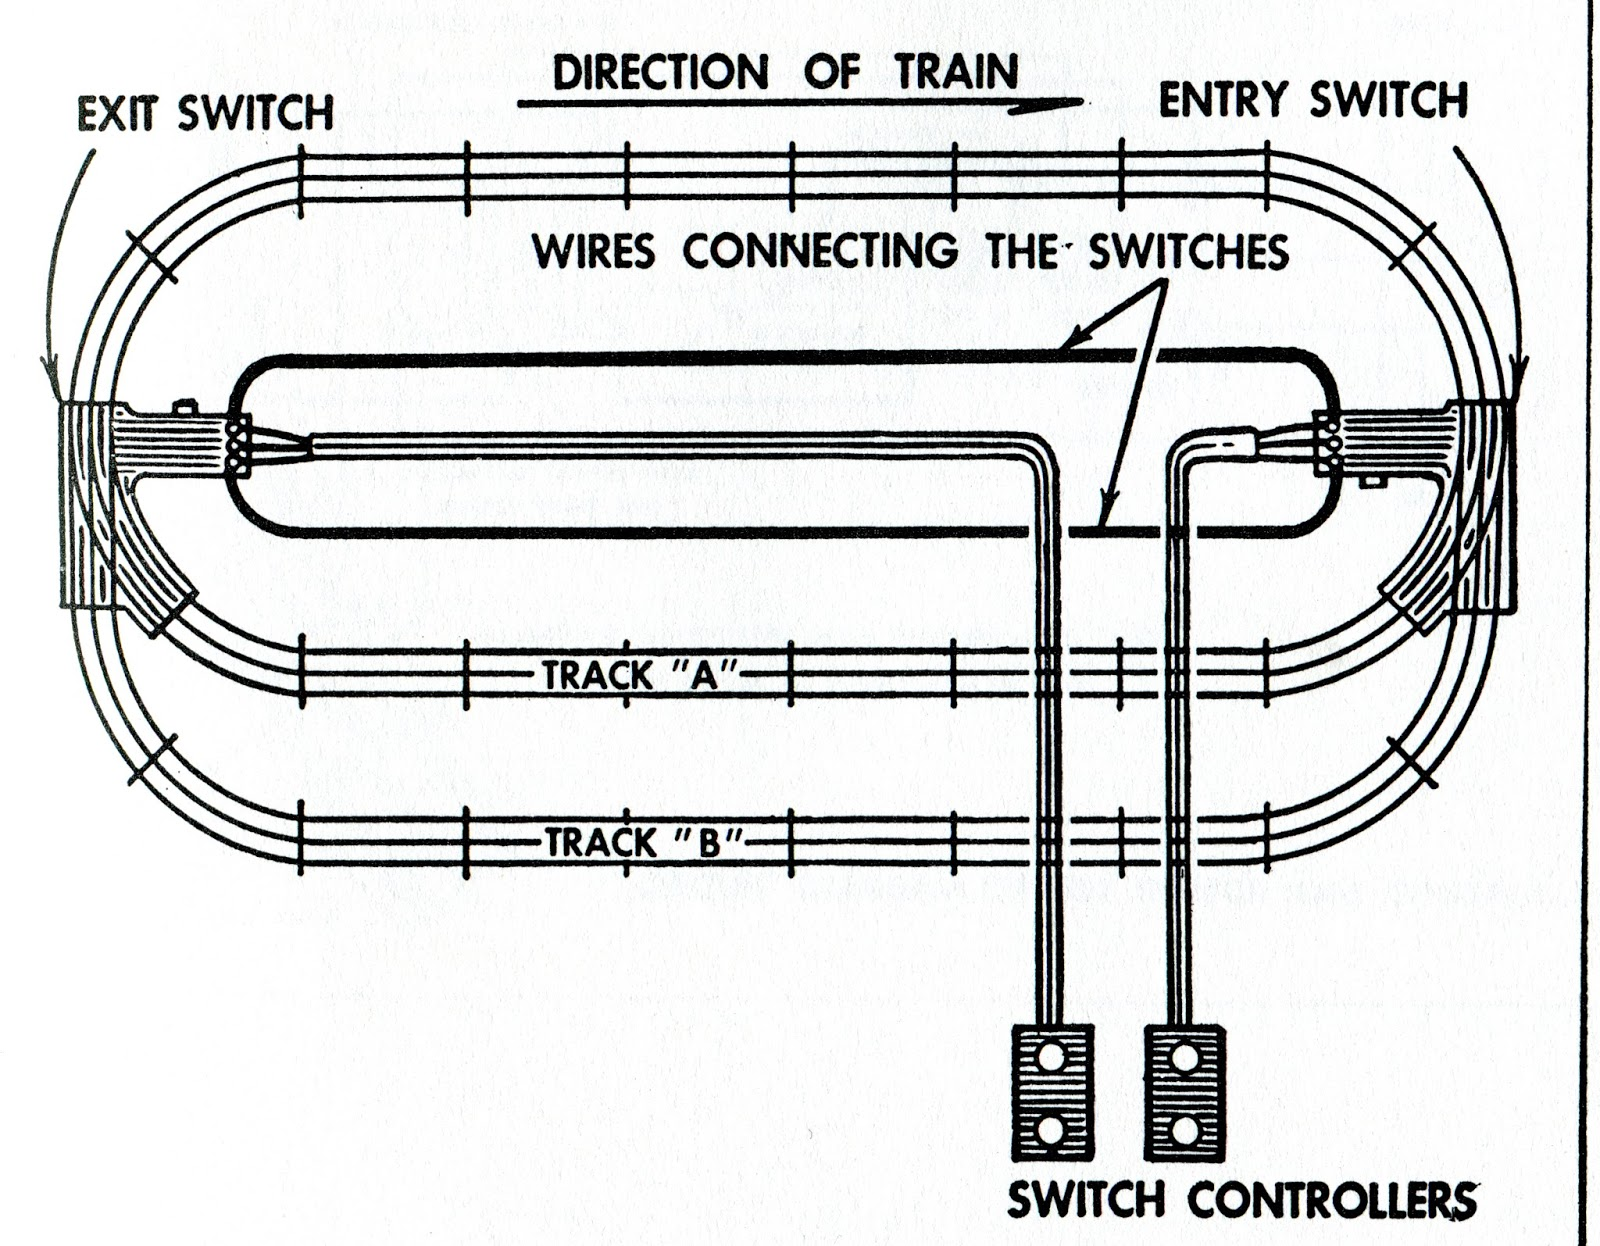 Lionel 1122 Switch Wiring Diagram - House Wiring Diagram Symbols •